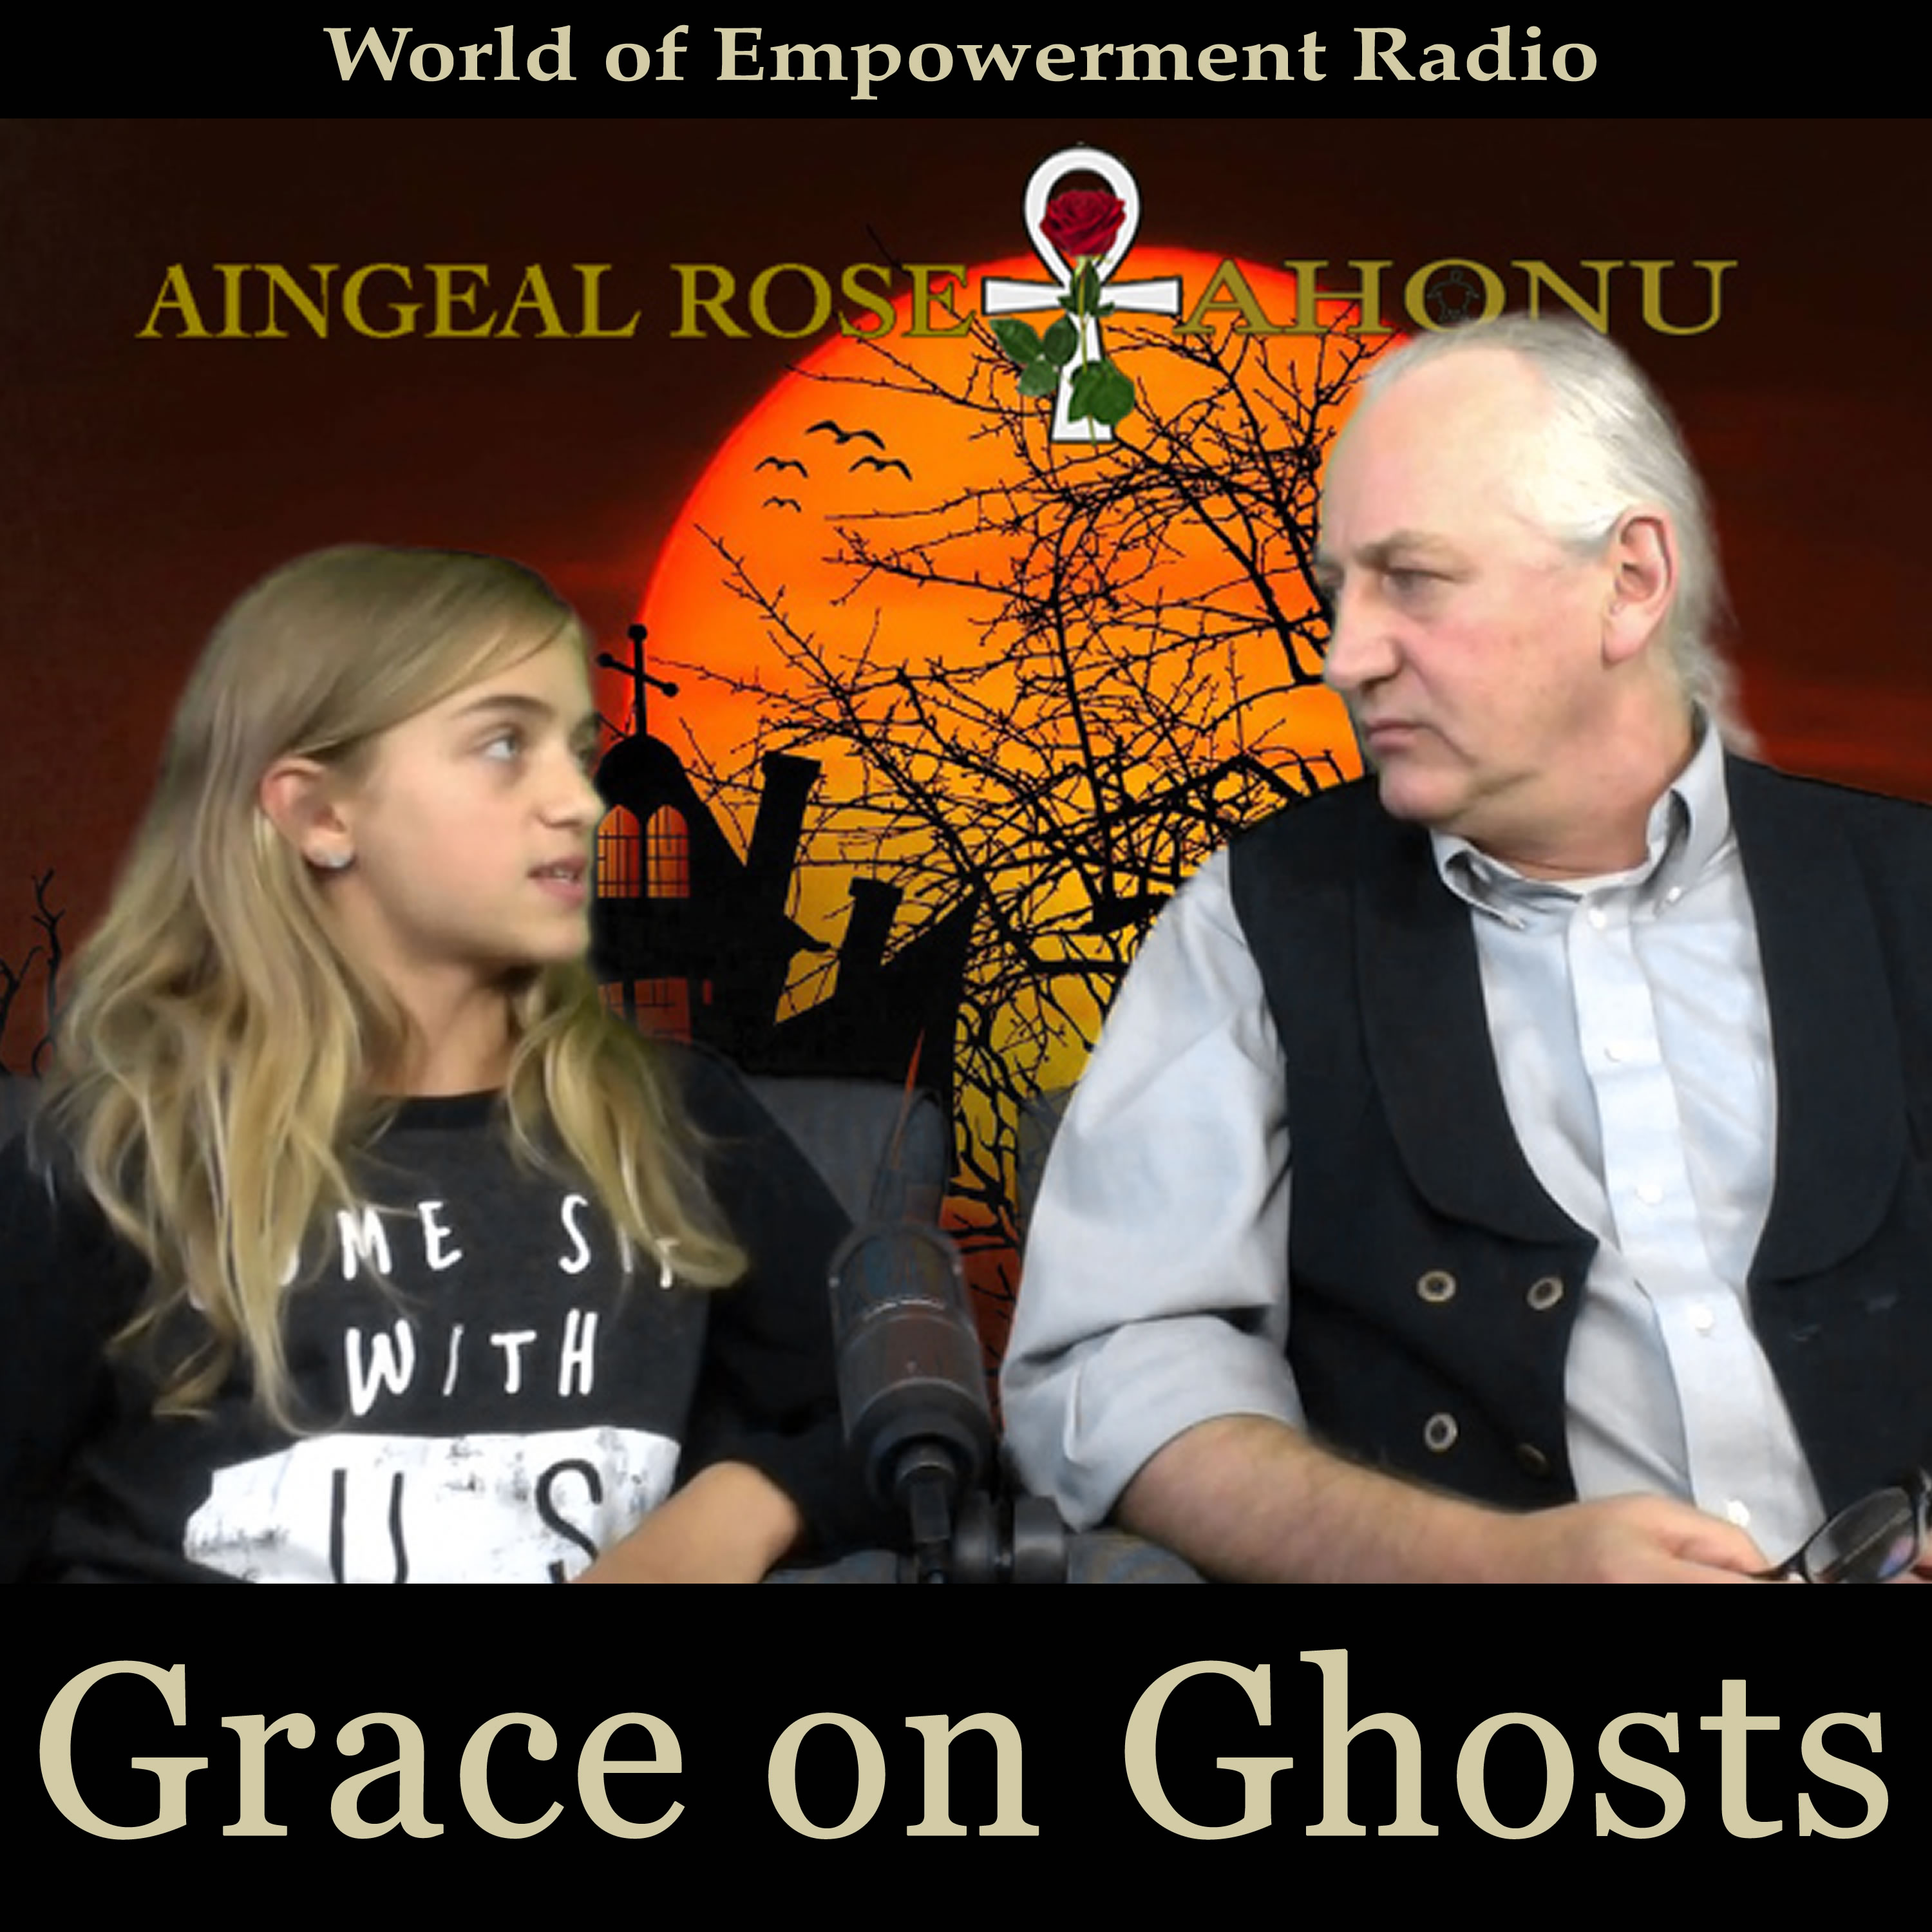 Aingeal Rose & Ahonu on The Honest-to-God Series discussing Energy and Ghosts with 10-year old Grace Rose